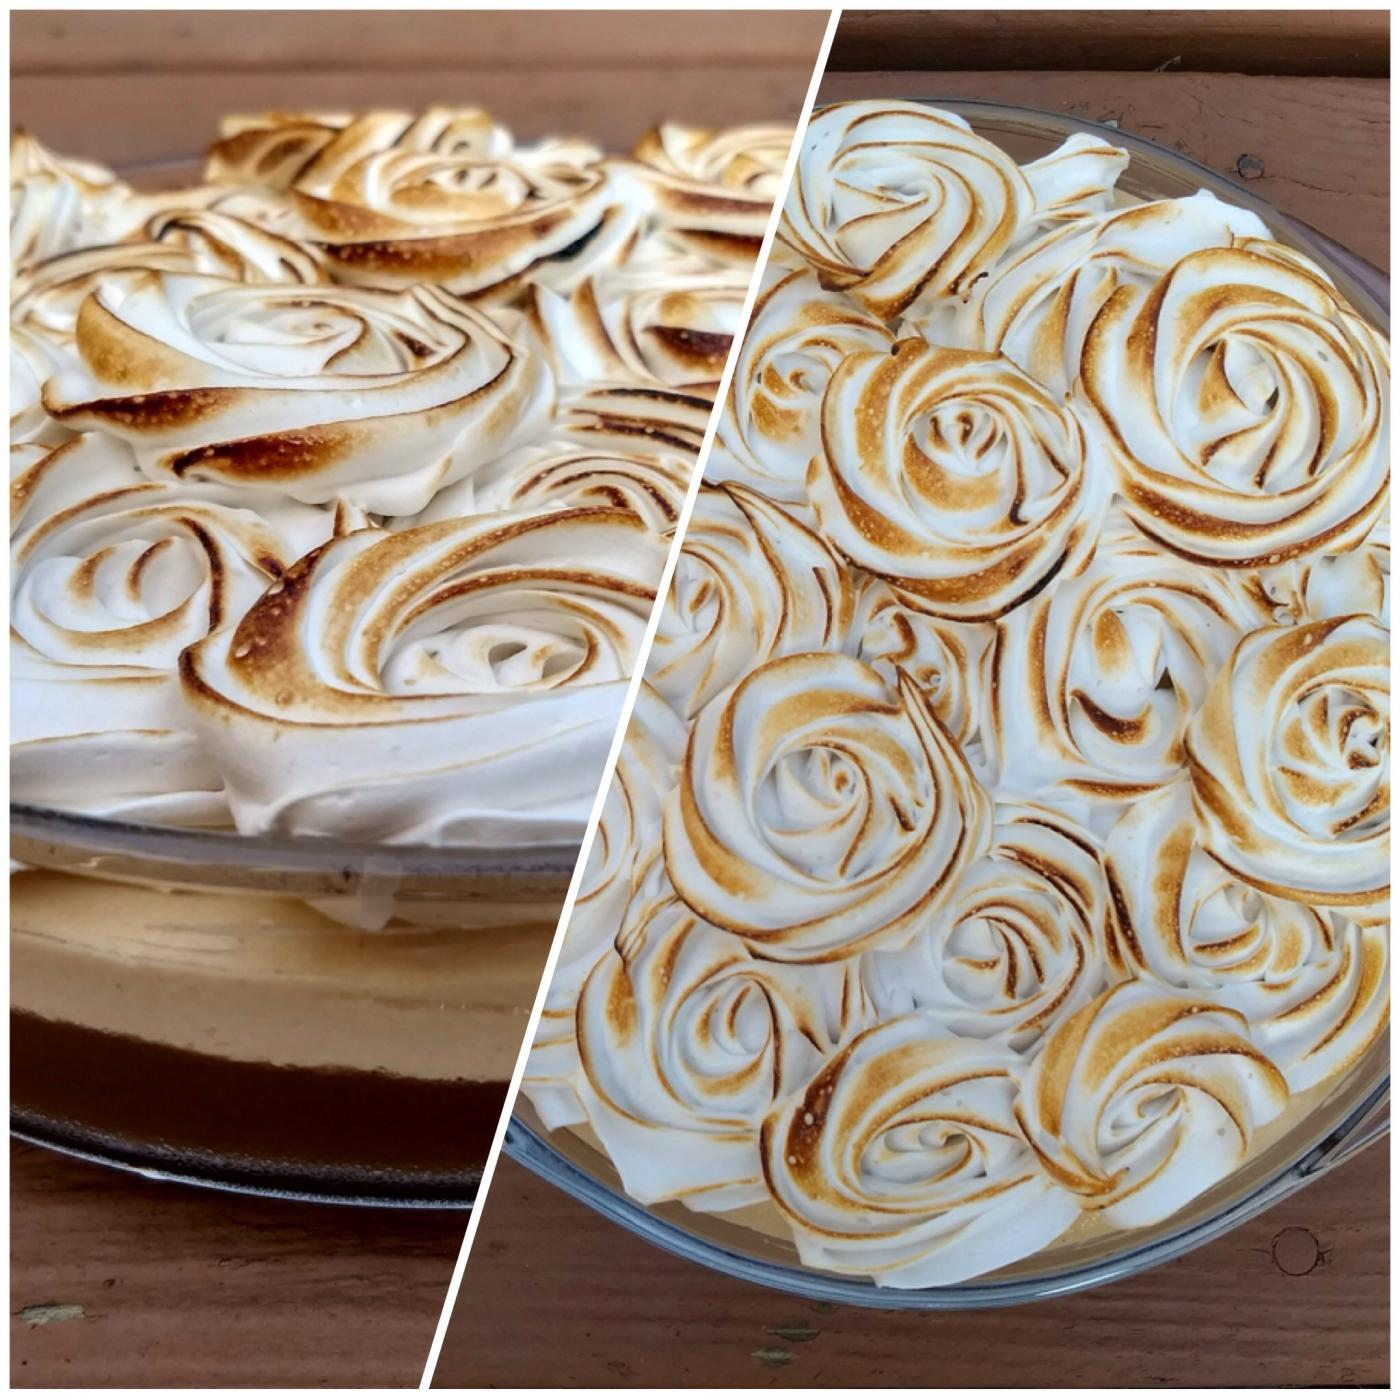 Piped meringue with a flamed top sits atop the First Lady of Puddings.